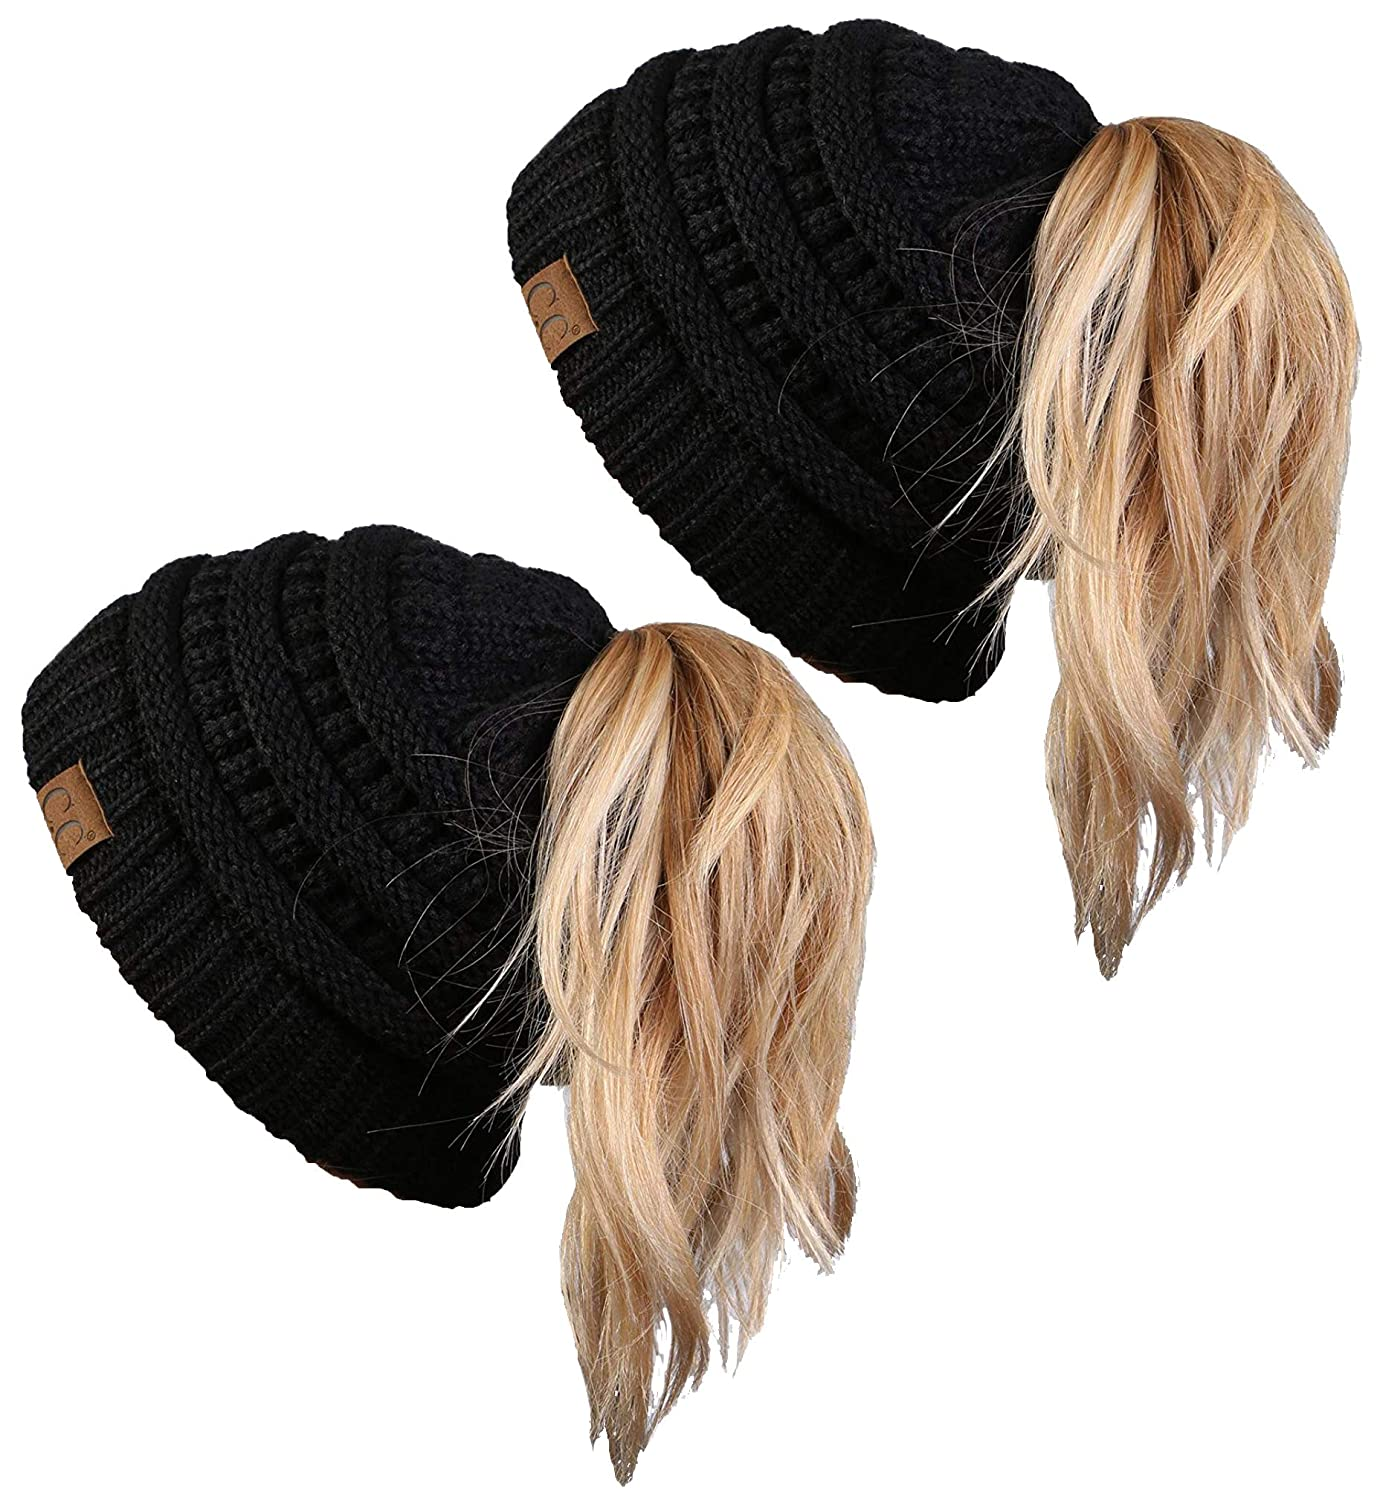 06a22556b48e5 Top 10 wholesale Knit Hat With Braids - Chinabrands.com